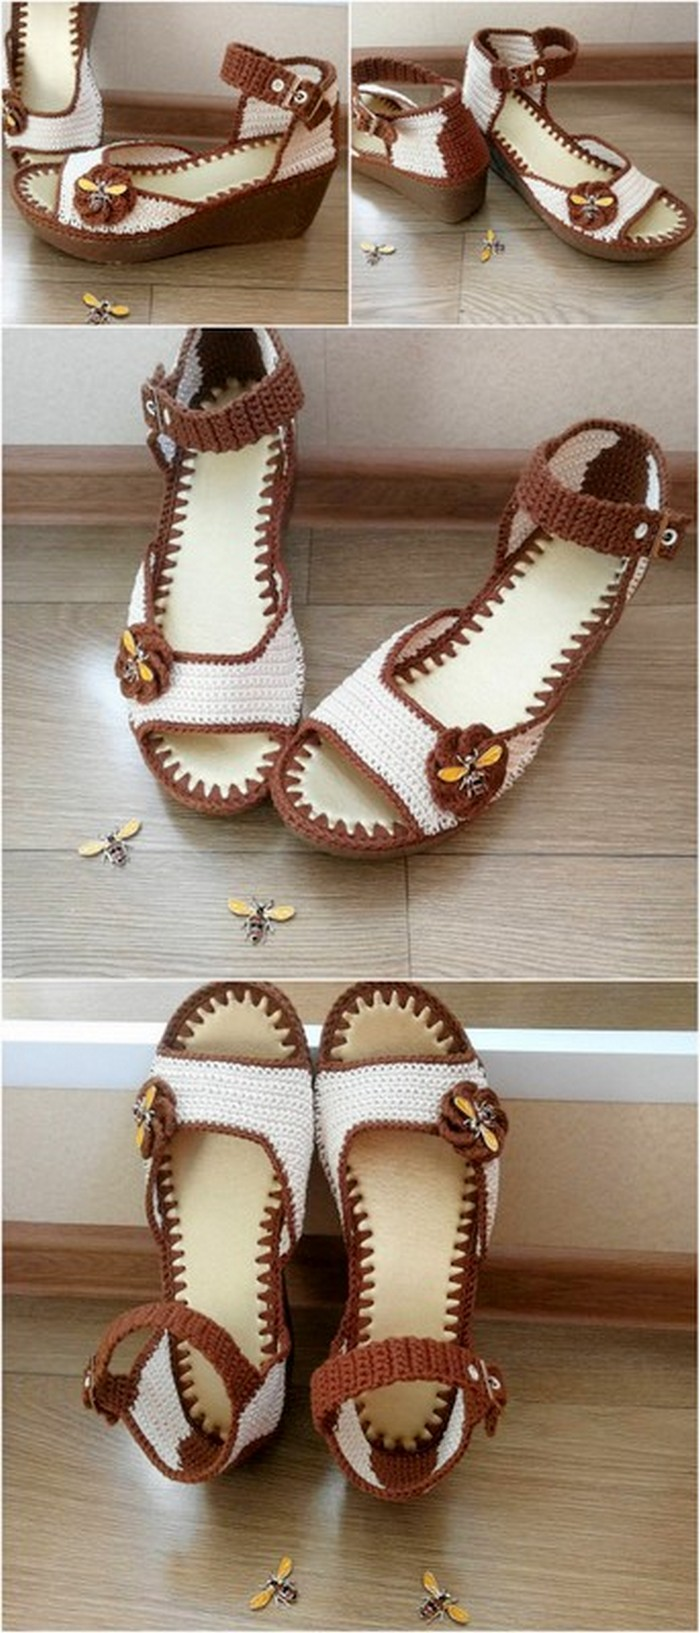 stylish crochet shoes for ladies